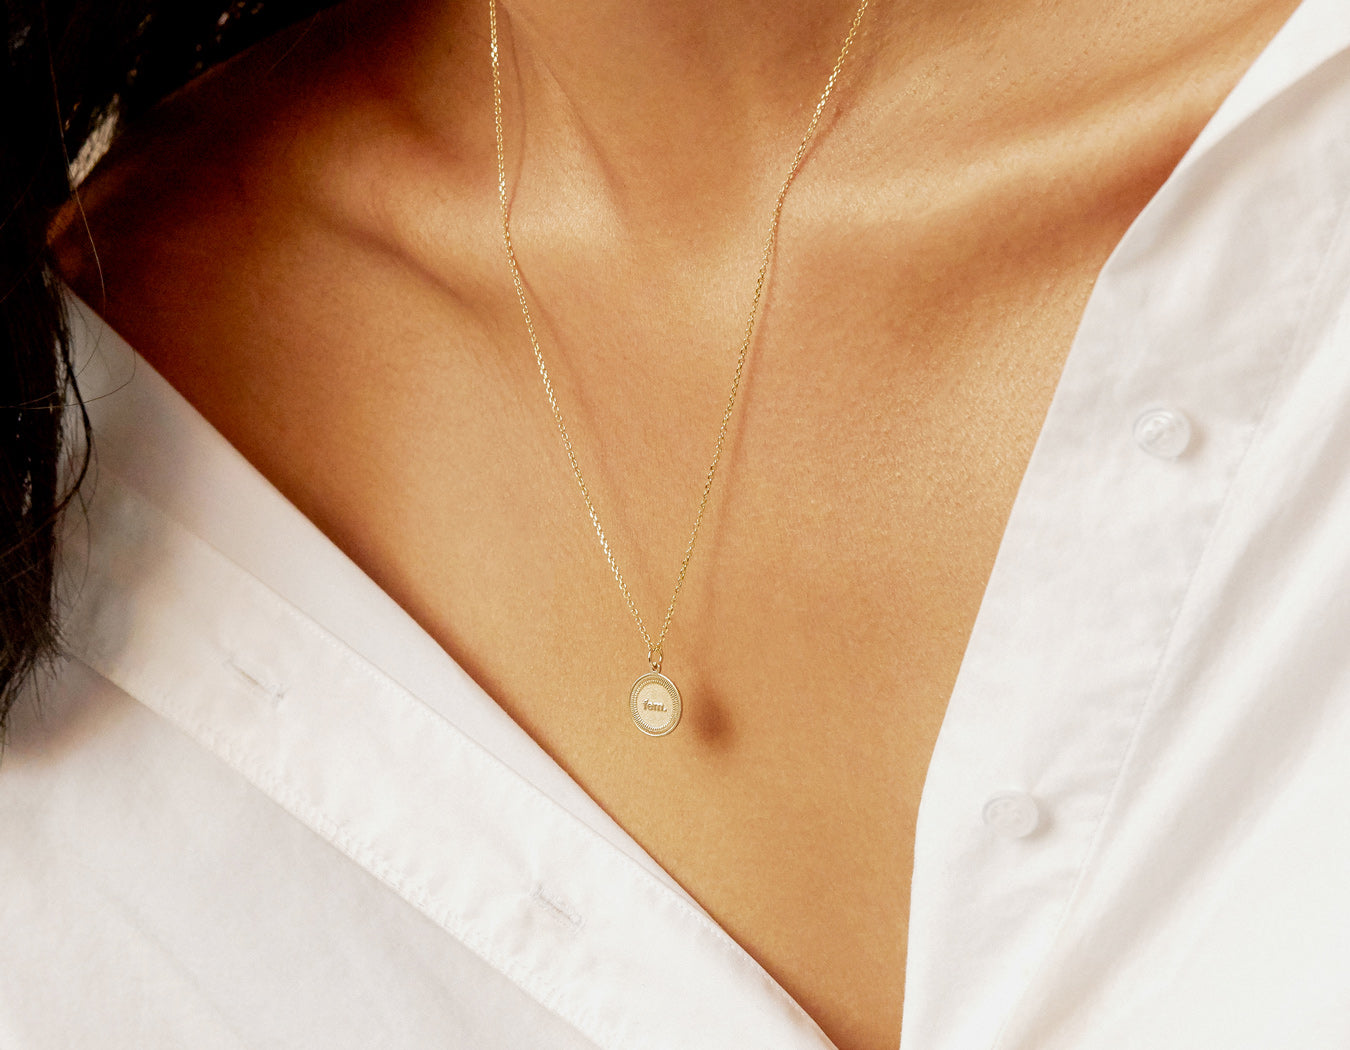 woman modelling 14k solid gold Fem. Necklace dangling female pendant thin chain by Vrai & Oro